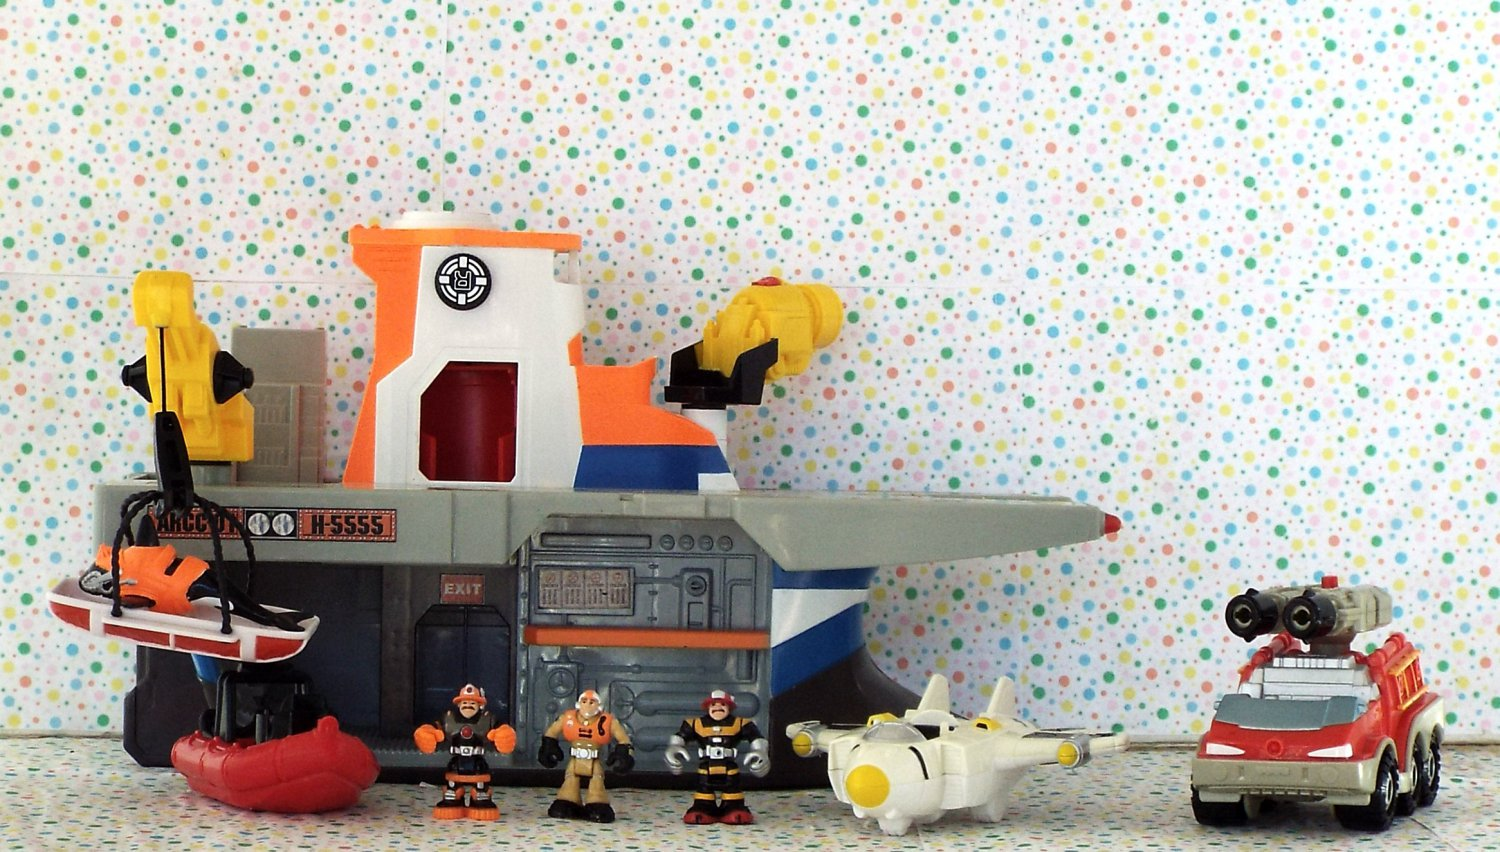 Fisher Price Rescue Heroes Micro A.R.C.C. Playset